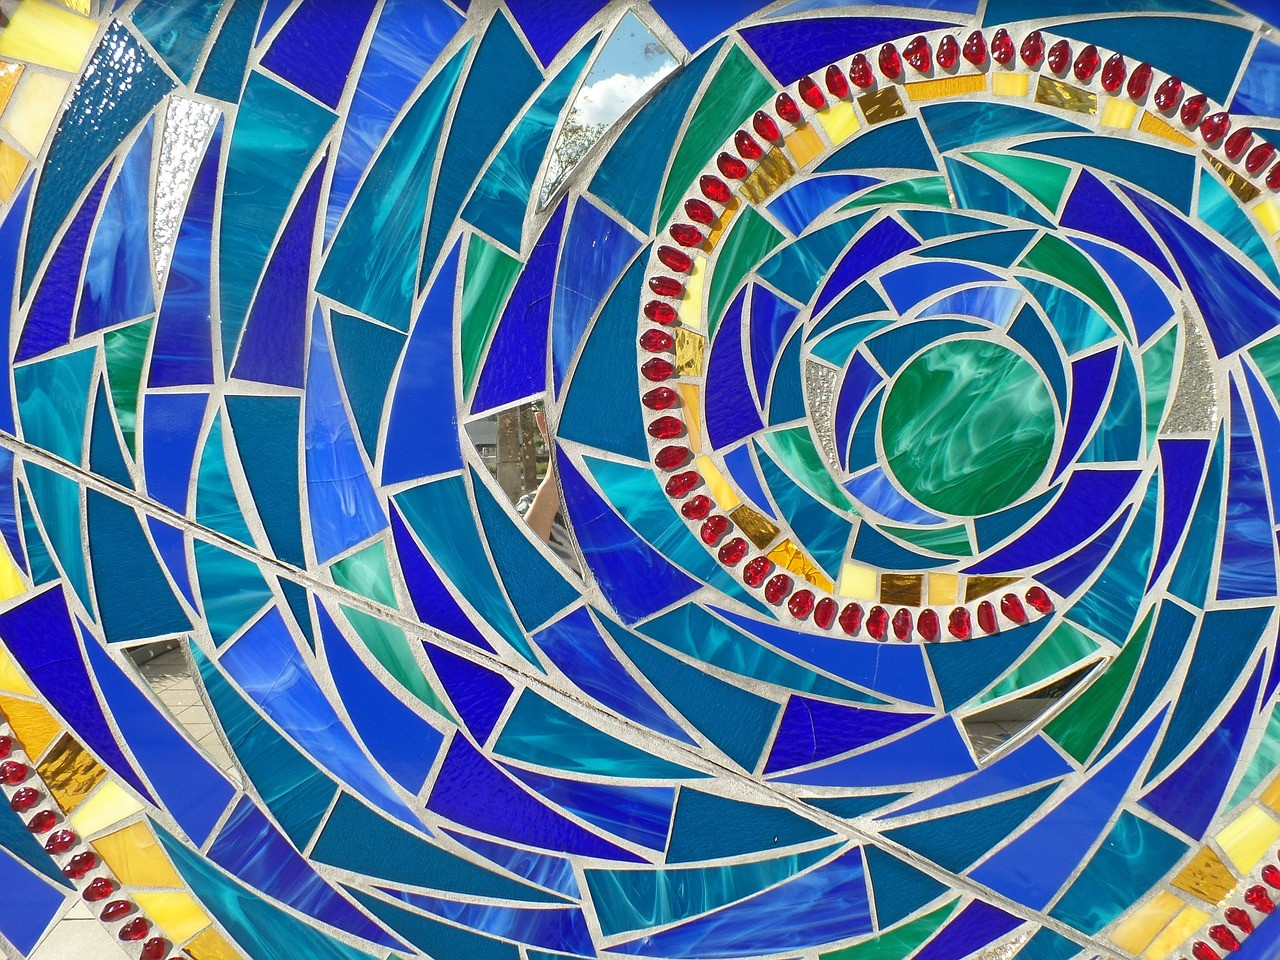 Incorporate Best Form of Art by Adding Mosaic Tile